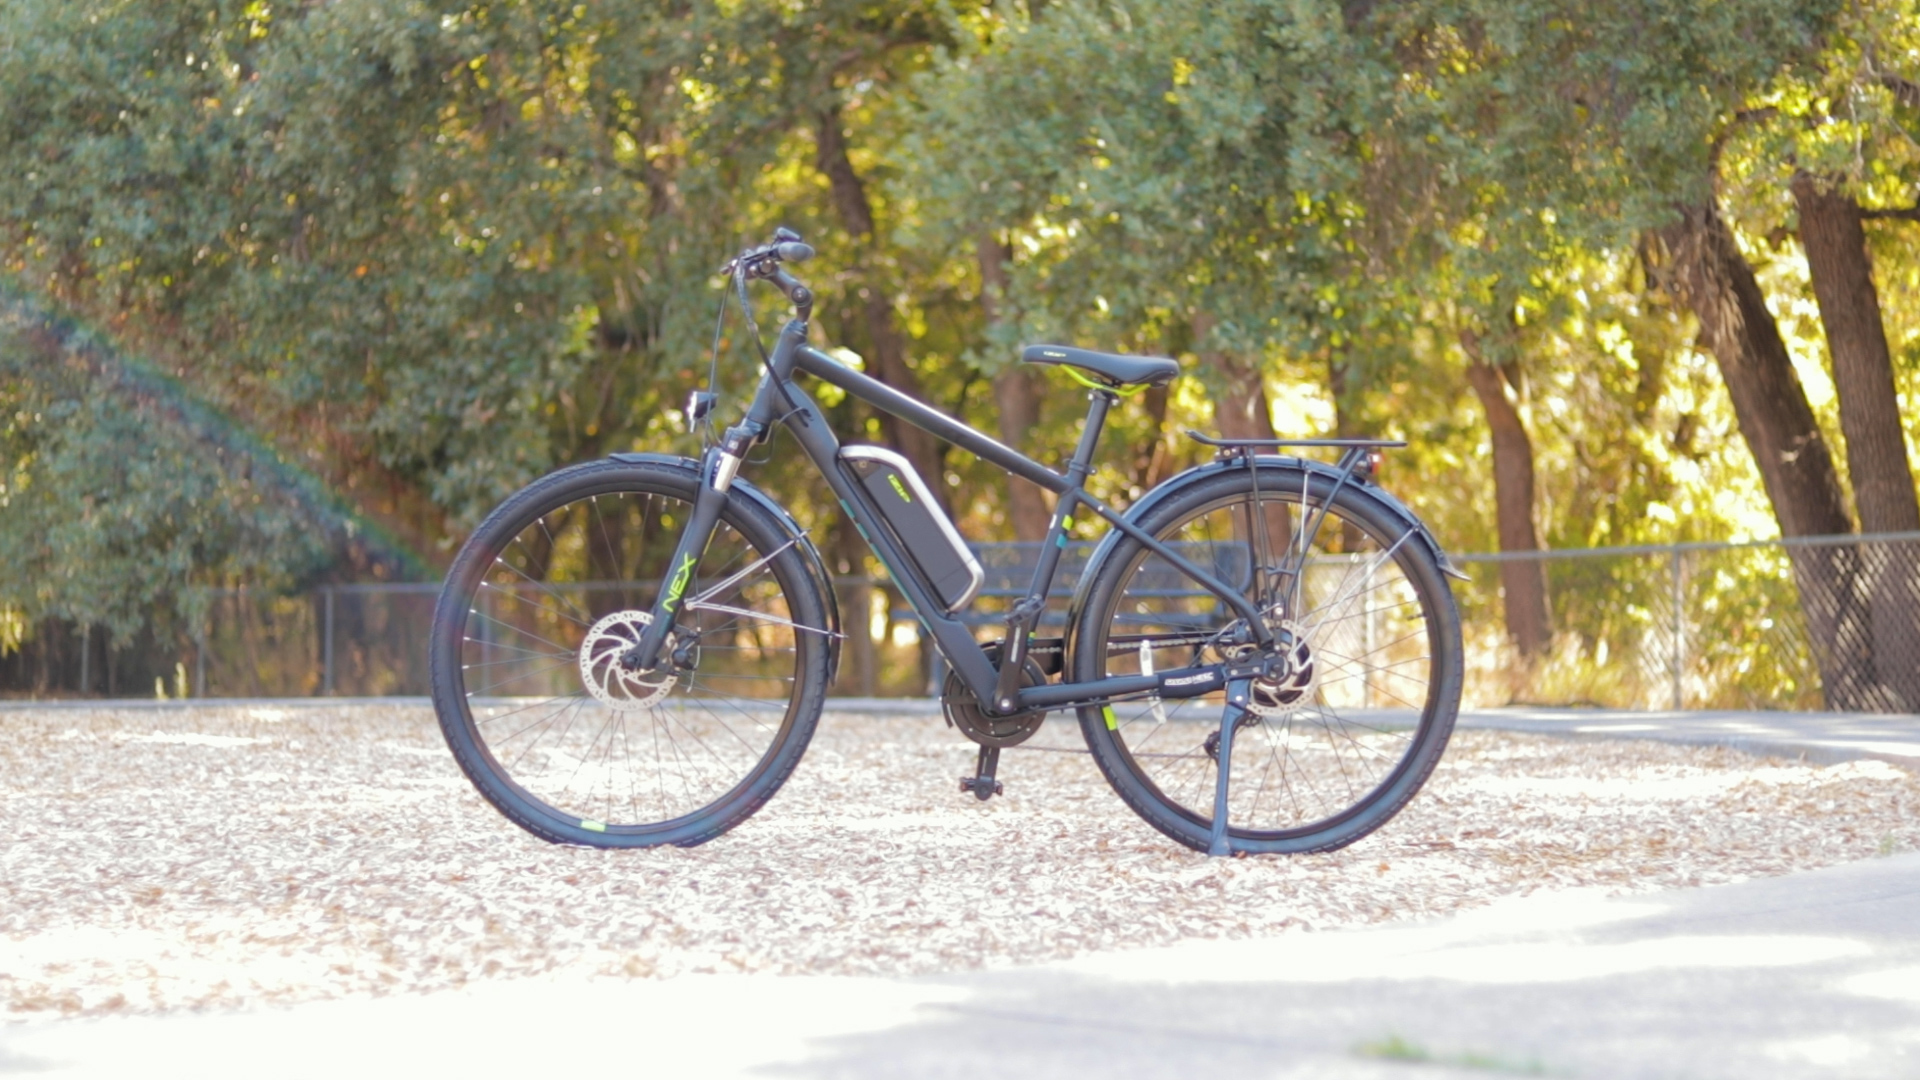 electrified-reviews-izip-e3-brio-electric-bike-review-profile.jpg